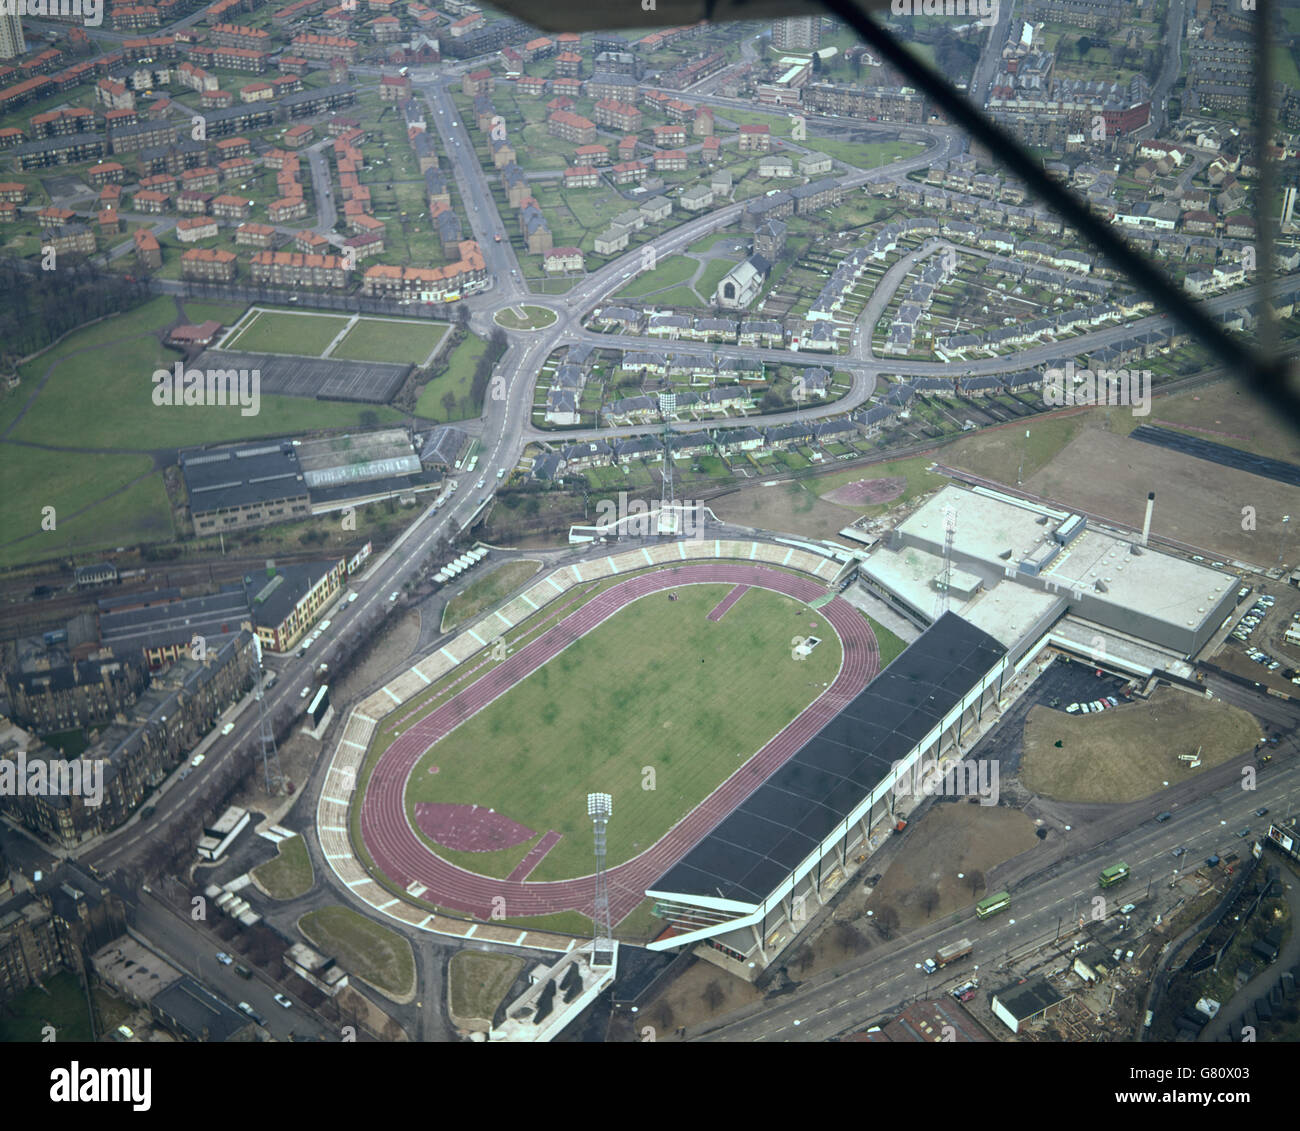 Meadowbank sports centre